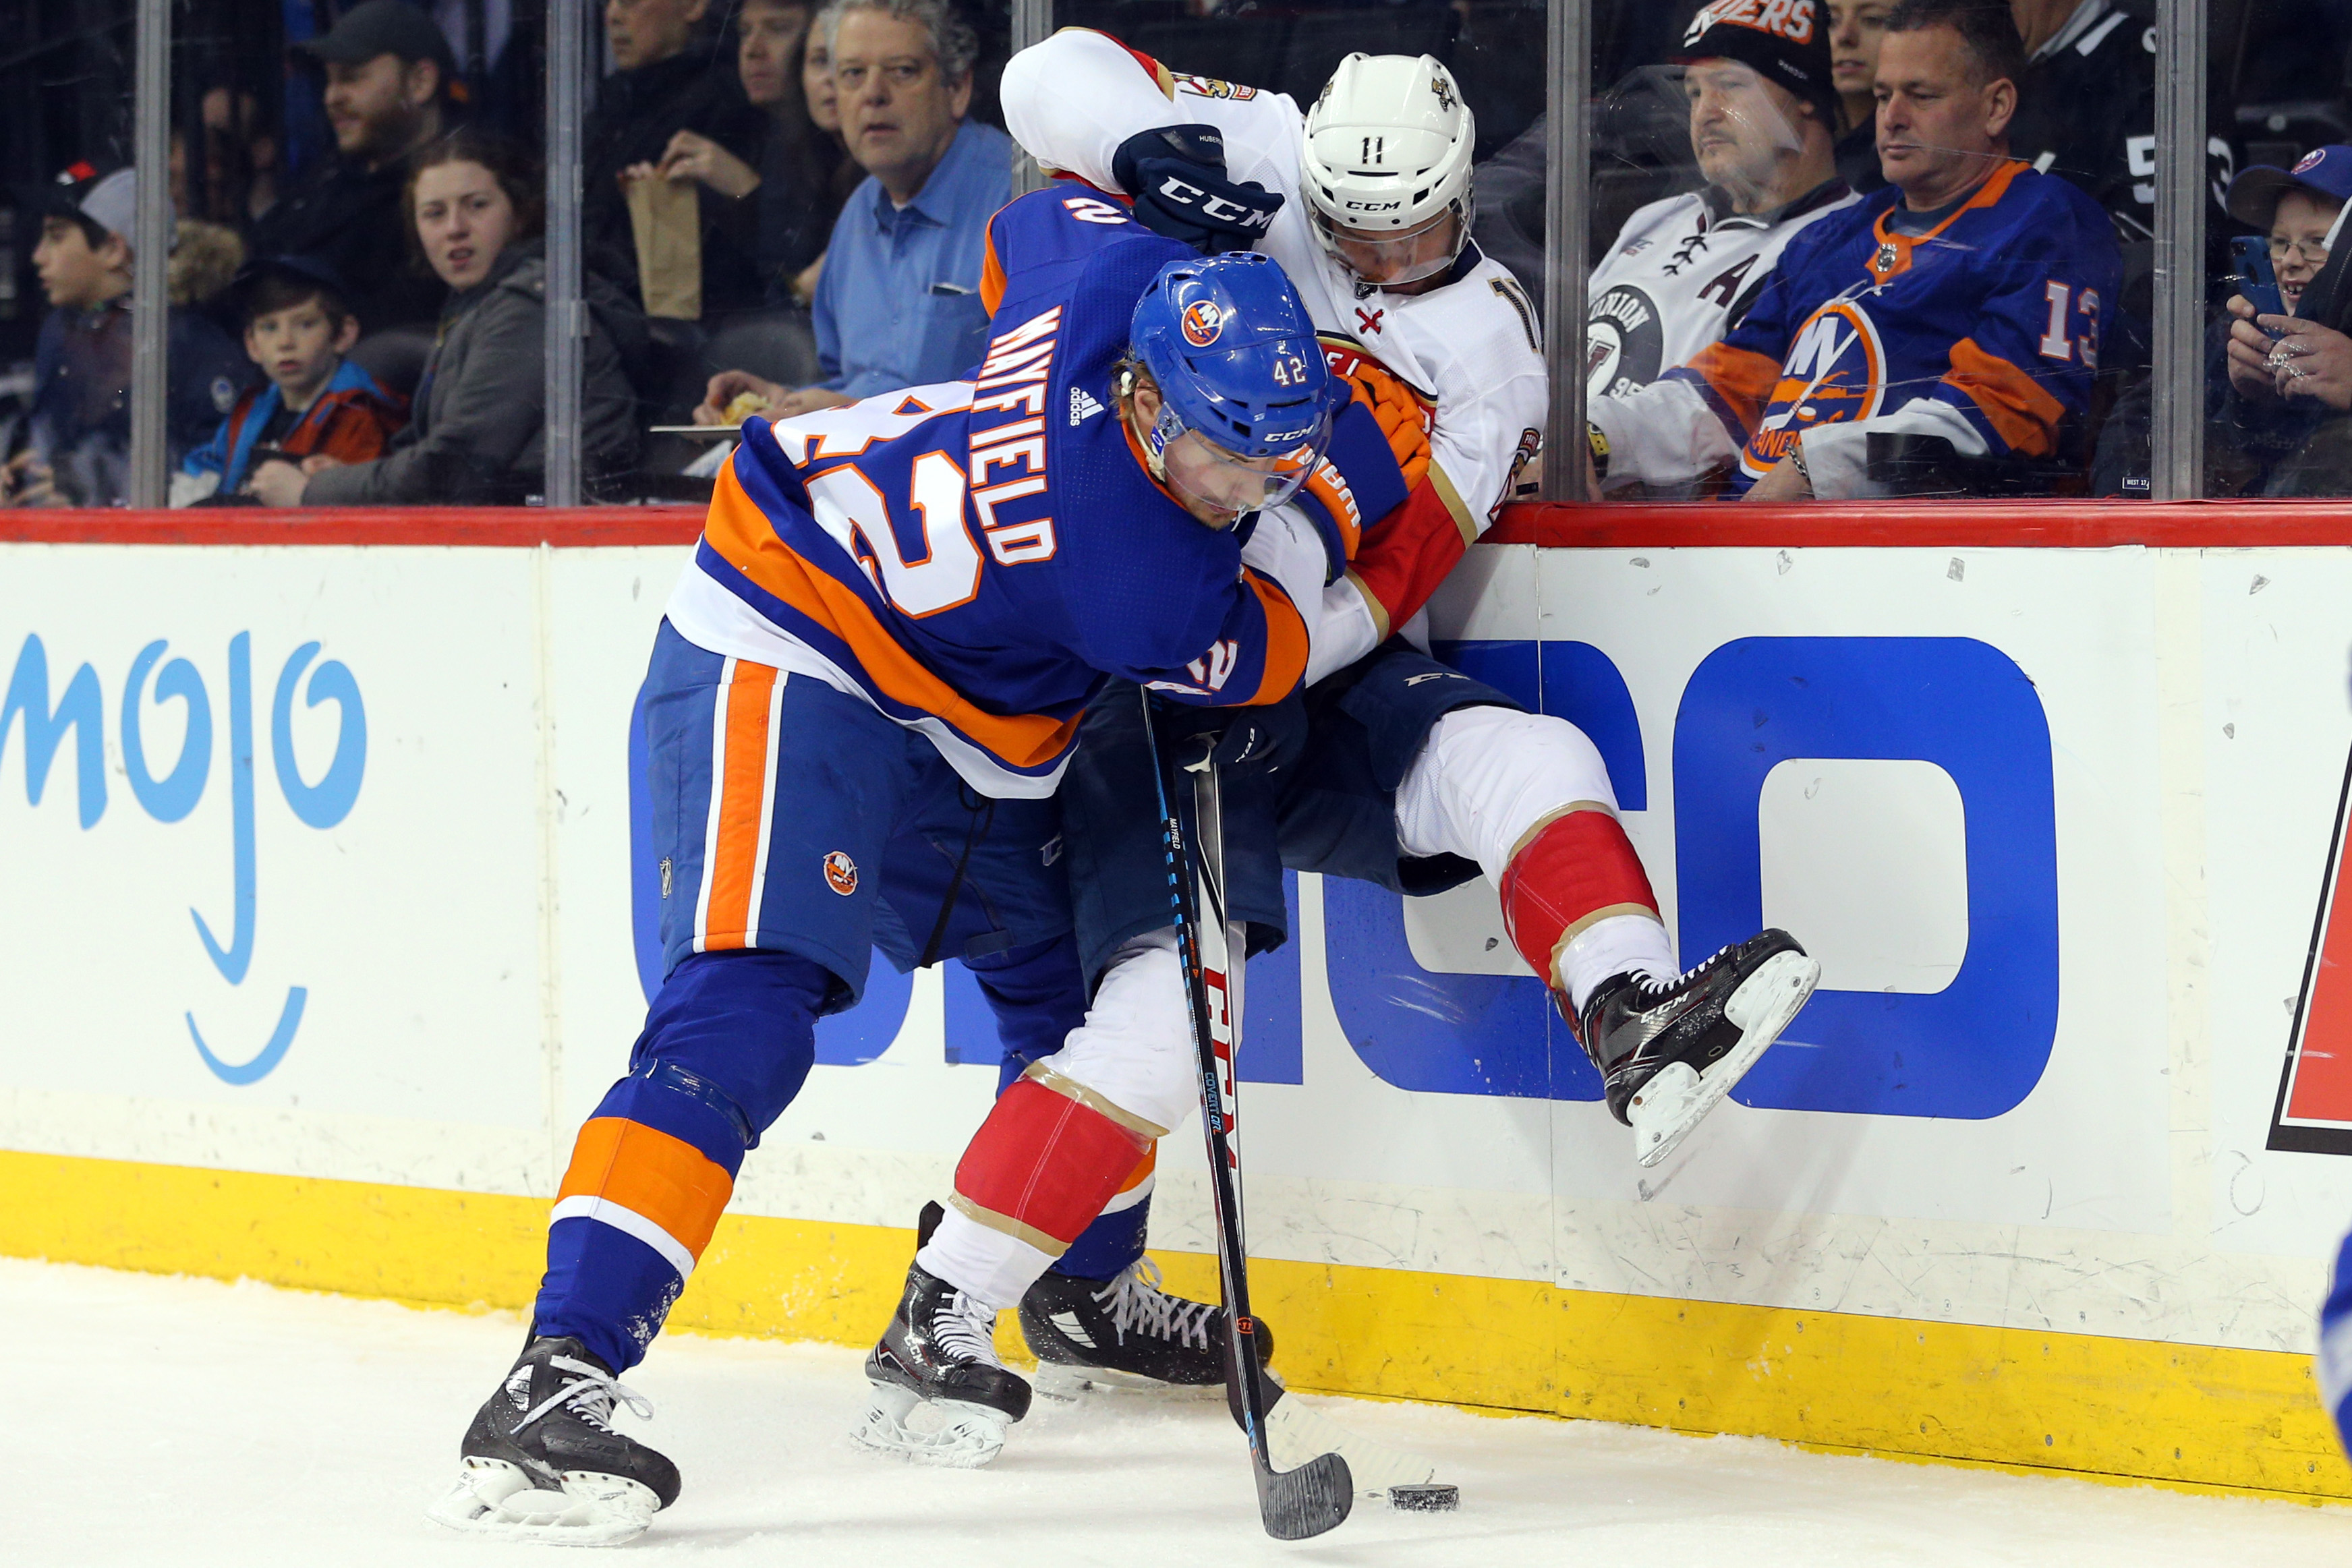 Jan 30, 2018; Brooklyn, NY, USA; New York Islanders defenseman Scott Mayfield (42) hits Florida Panthers center Jonathan Huberdeau (11) as they fight for the puck during the first period at Barclays Center. Mandatory Credit: Brad Penner-USA TODAY Sports